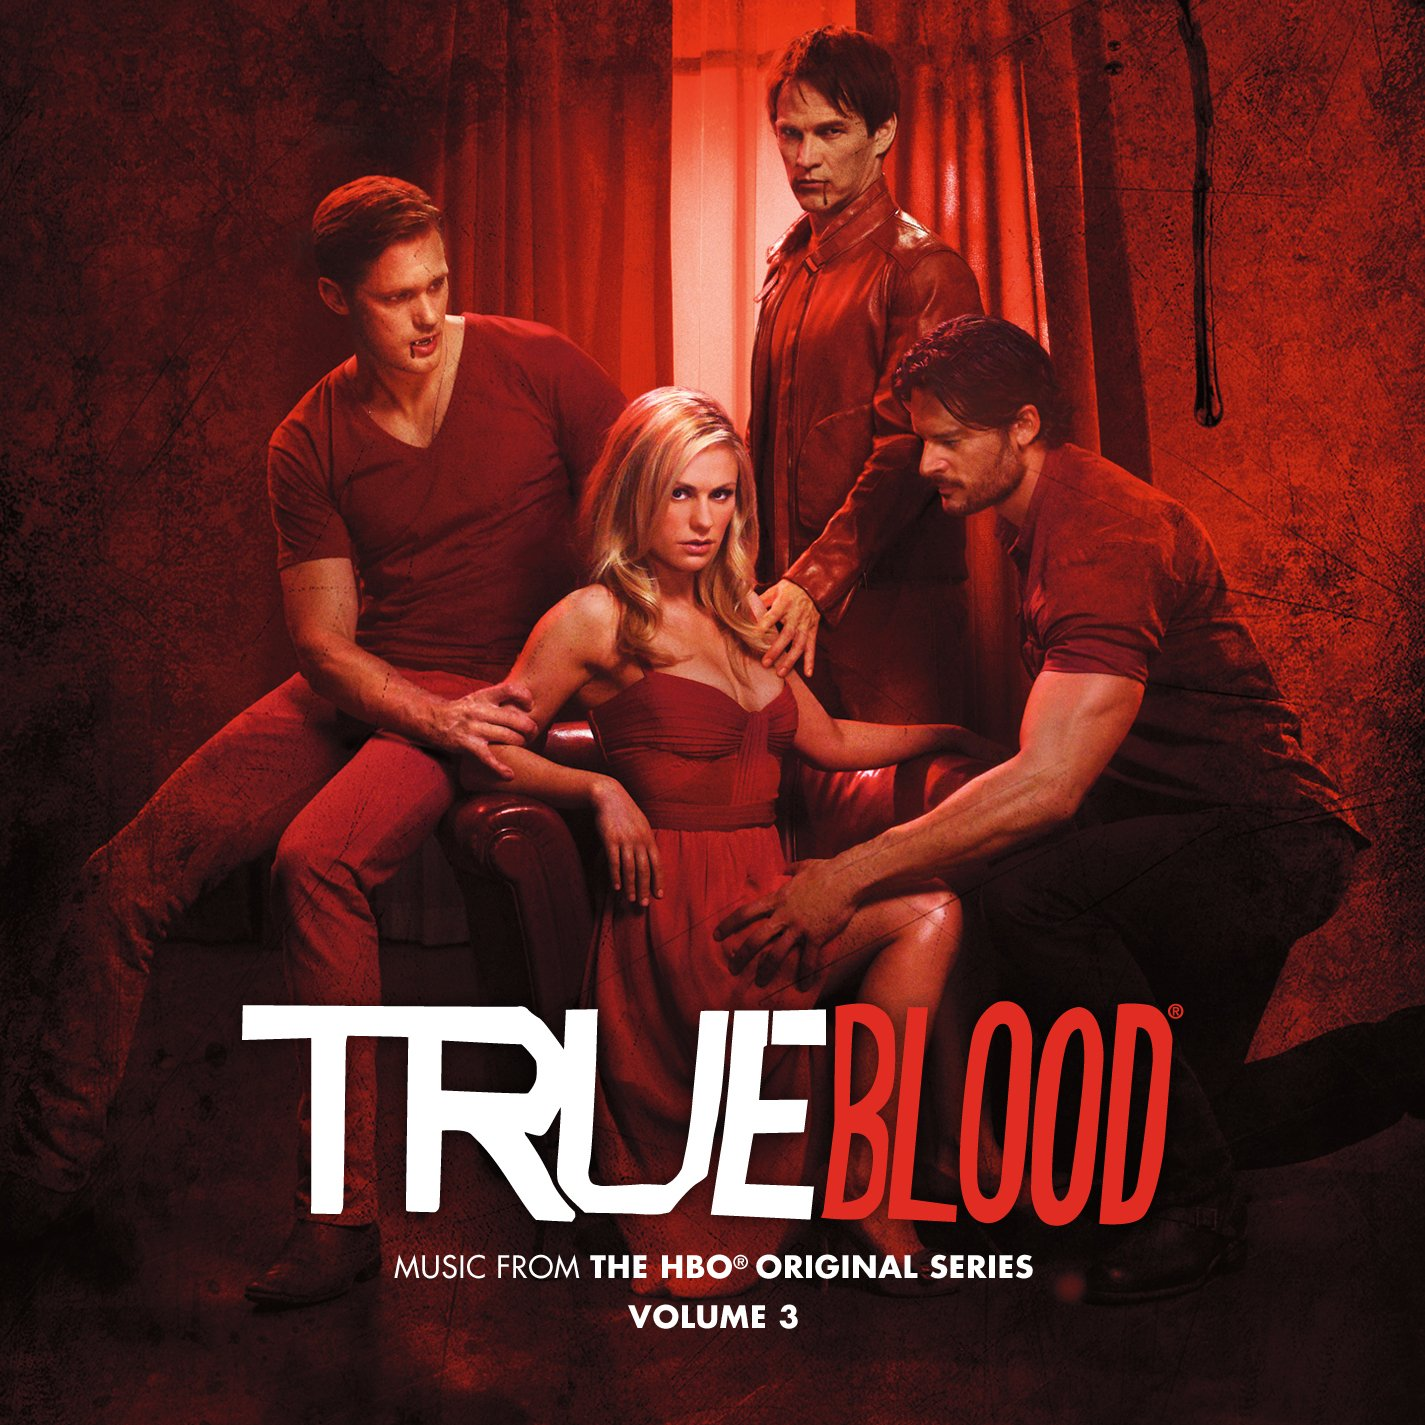 True Blood: Music From The HBO Original Series Volume 3 by Unknown